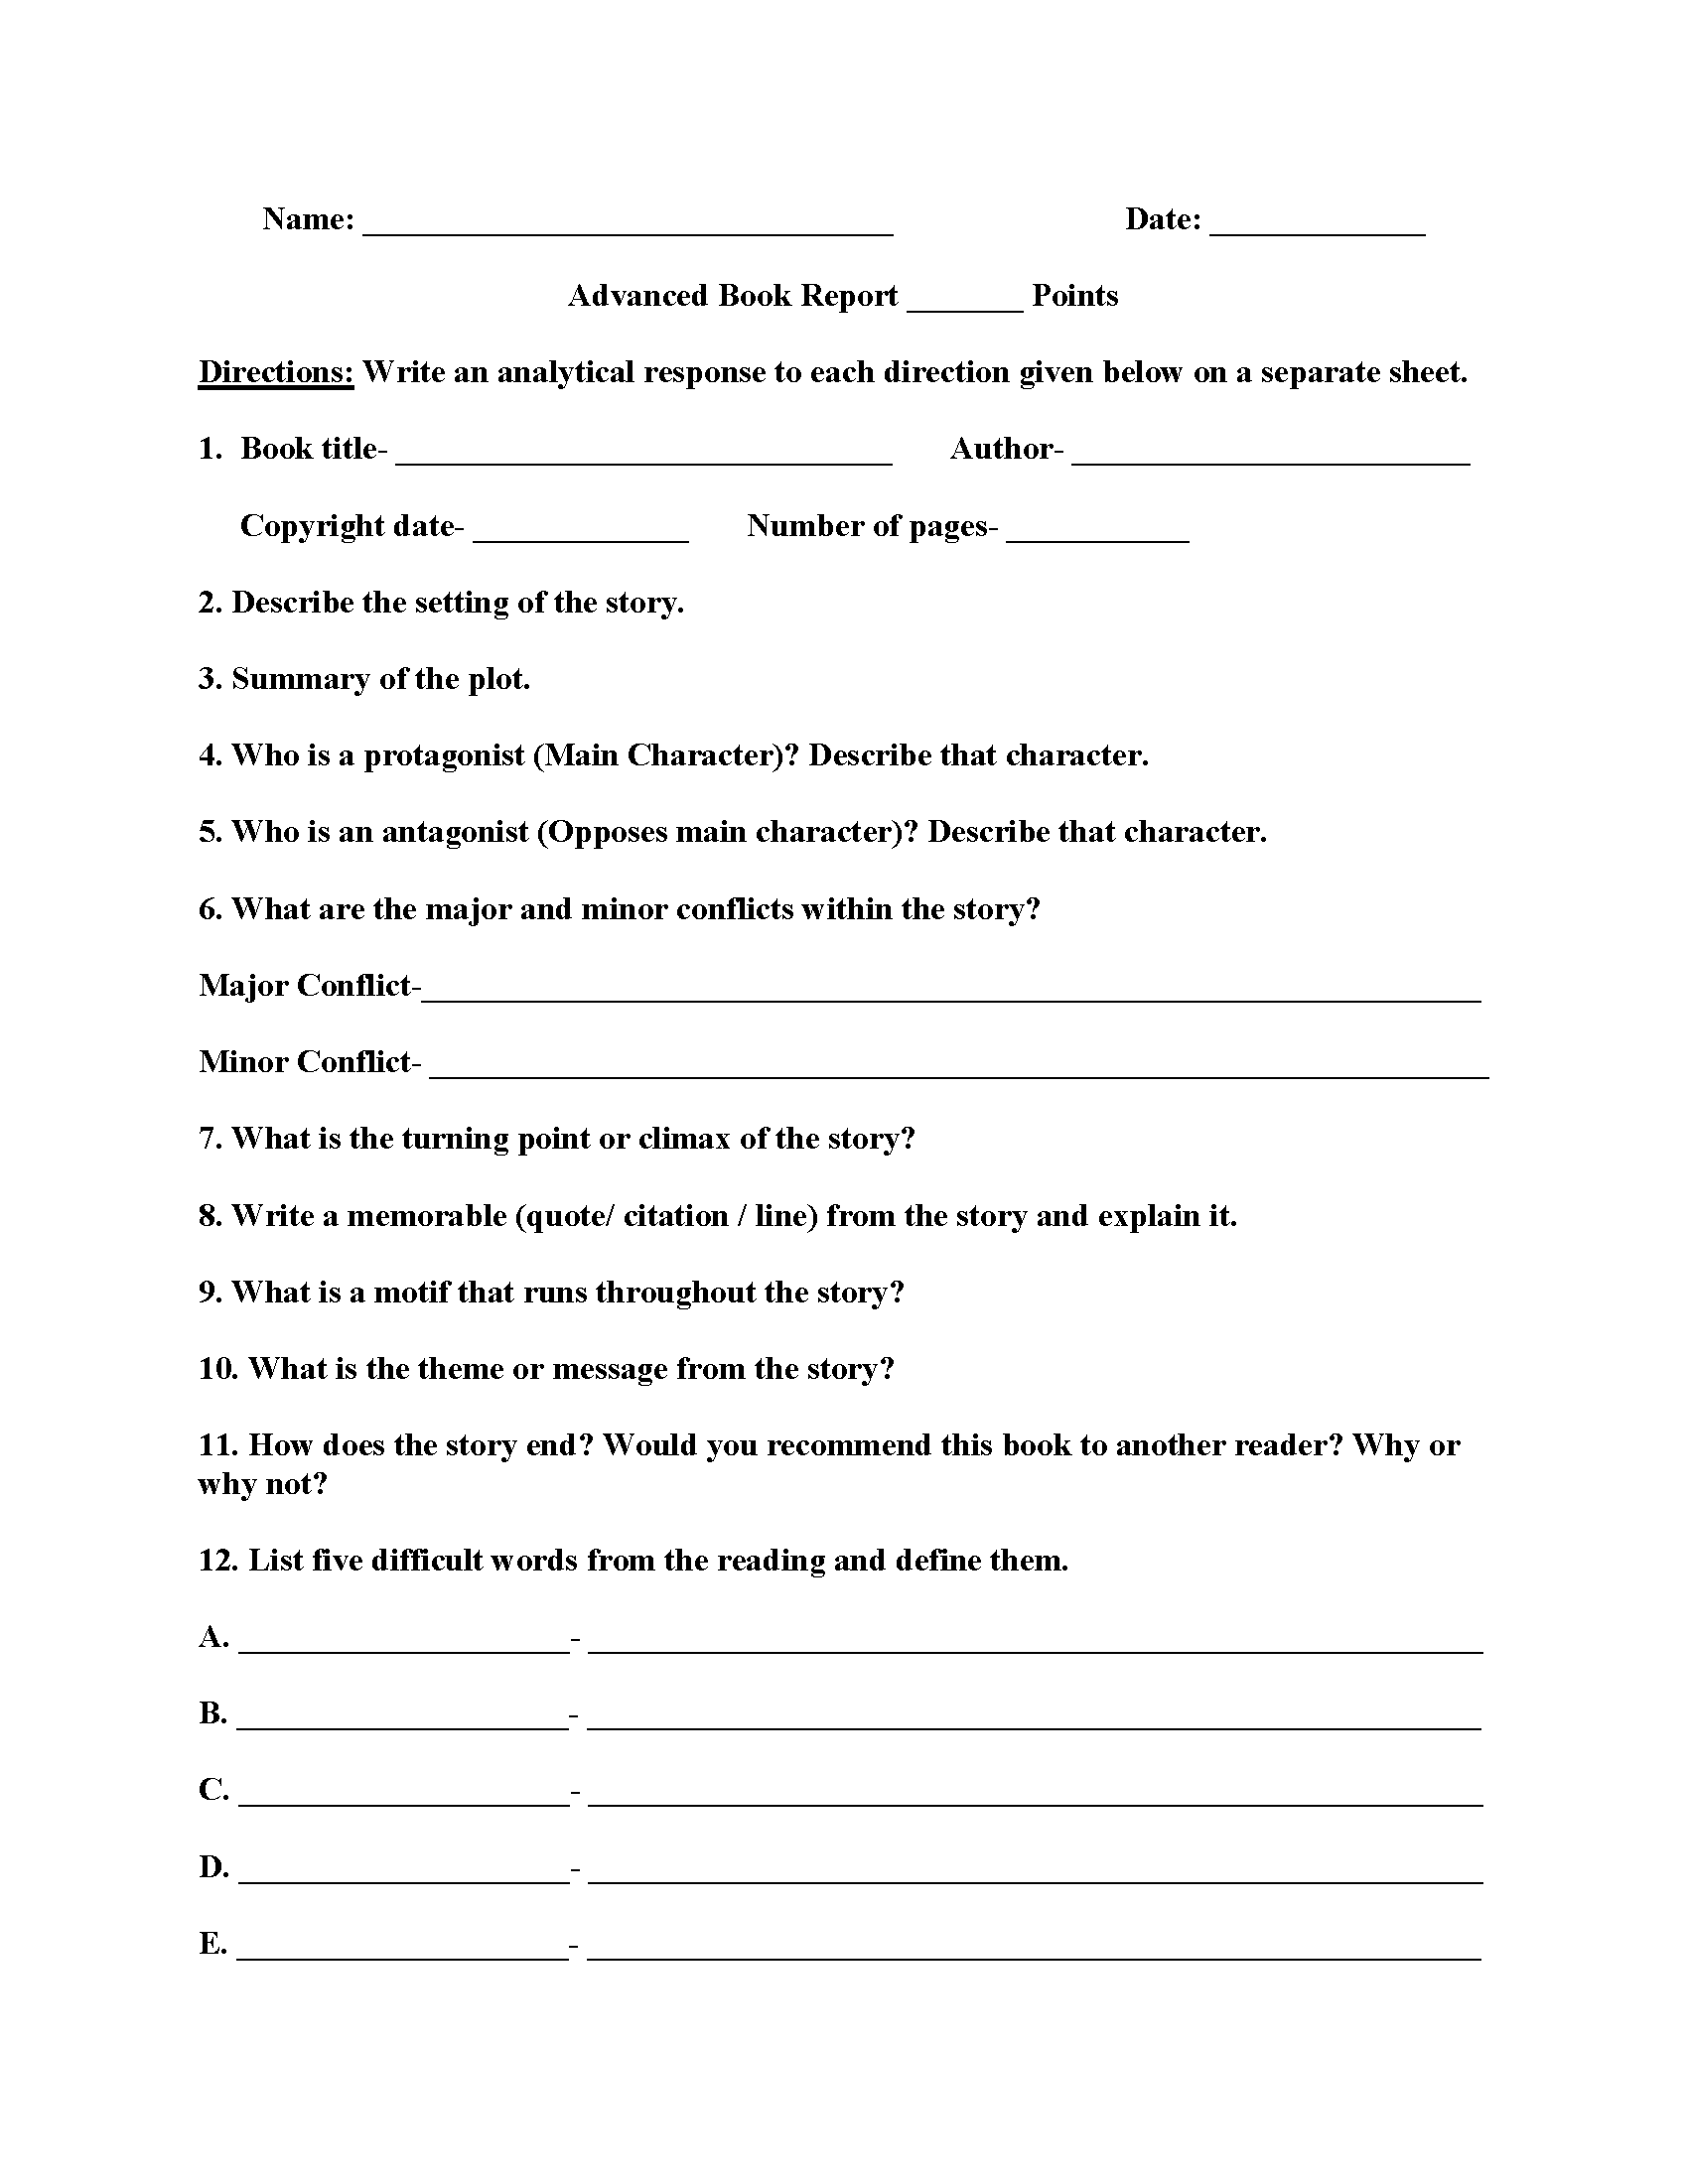 Advanced Book Report Worksheets   Book report templates [ 2200 x 1700 Pixel ]